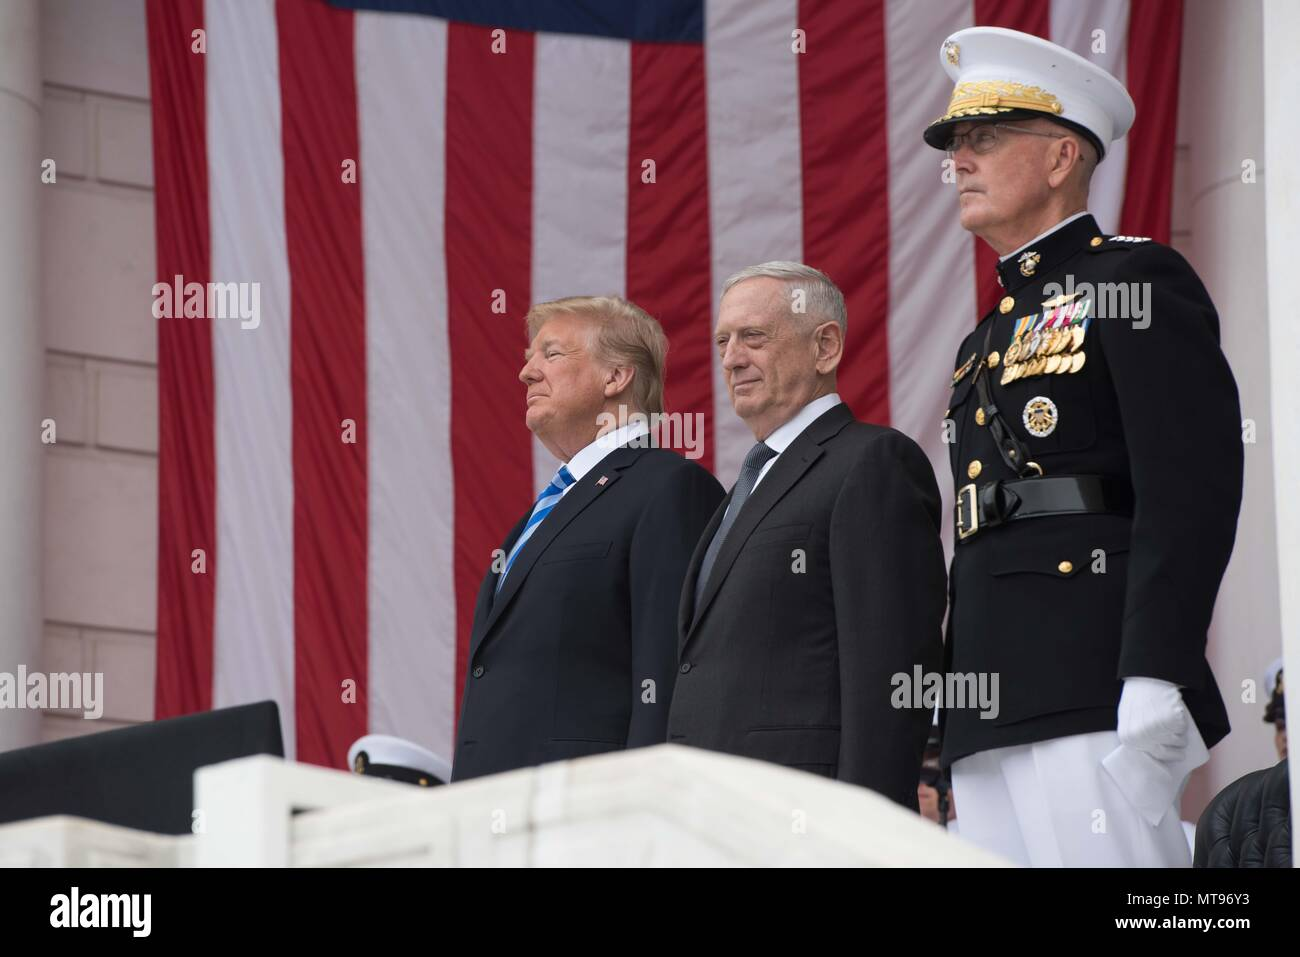 U.S President Donald Trump left, Secretary of Defense James Mattis, center, and Chairman of the Joint Chiefs Gen. Joseph Dunford salute during the 150th annual National Memorial Day Observance at Arlington National Cemetery May 28, 2018 in Arlington, Virginia. - Stock Image